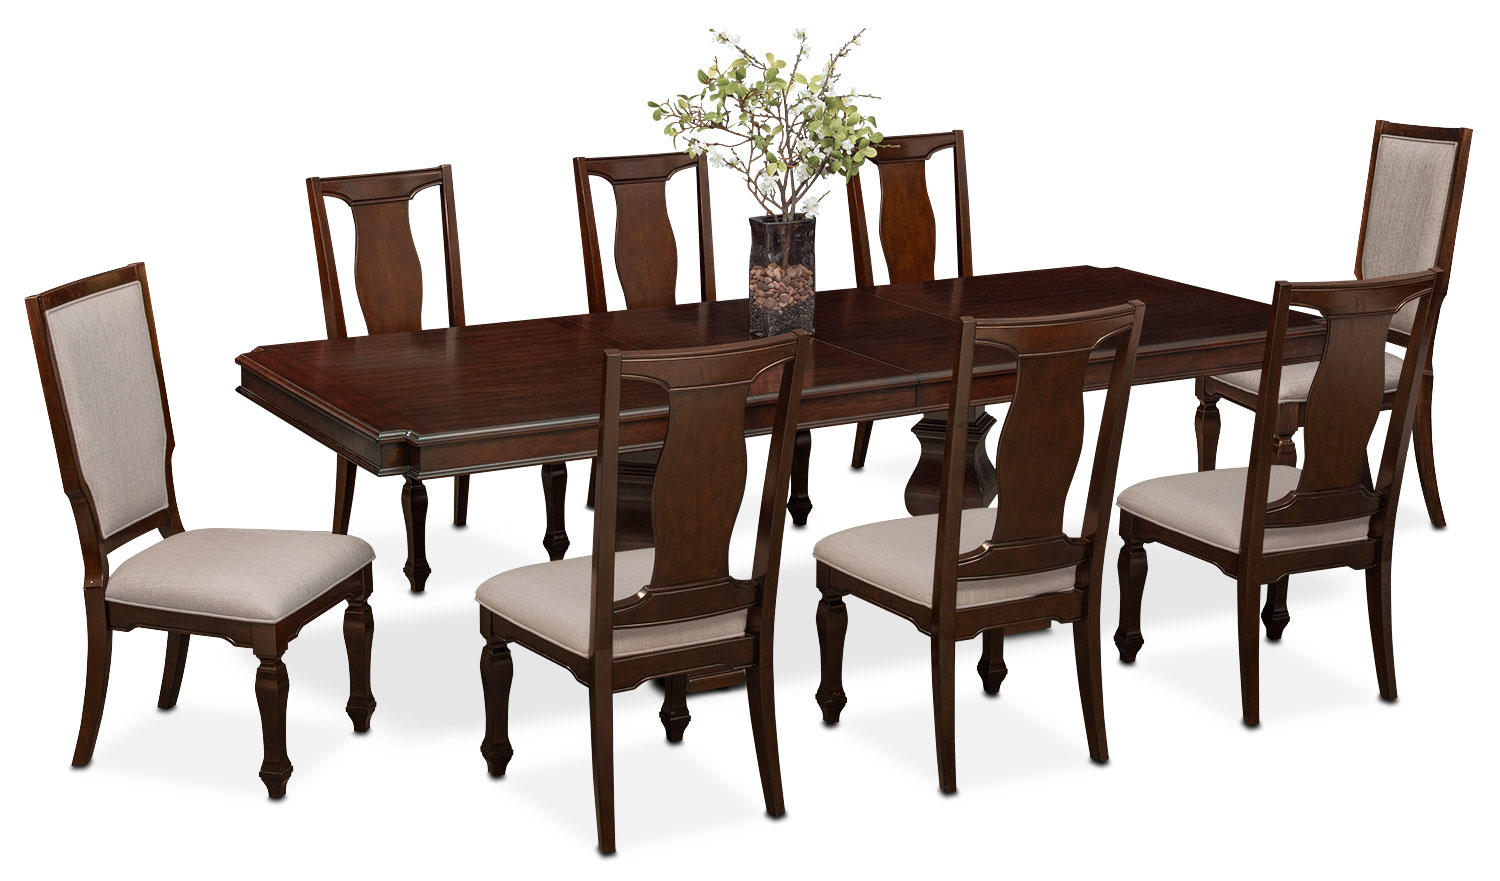 dining room chairs pics shop dining room furniture value city furniture value city